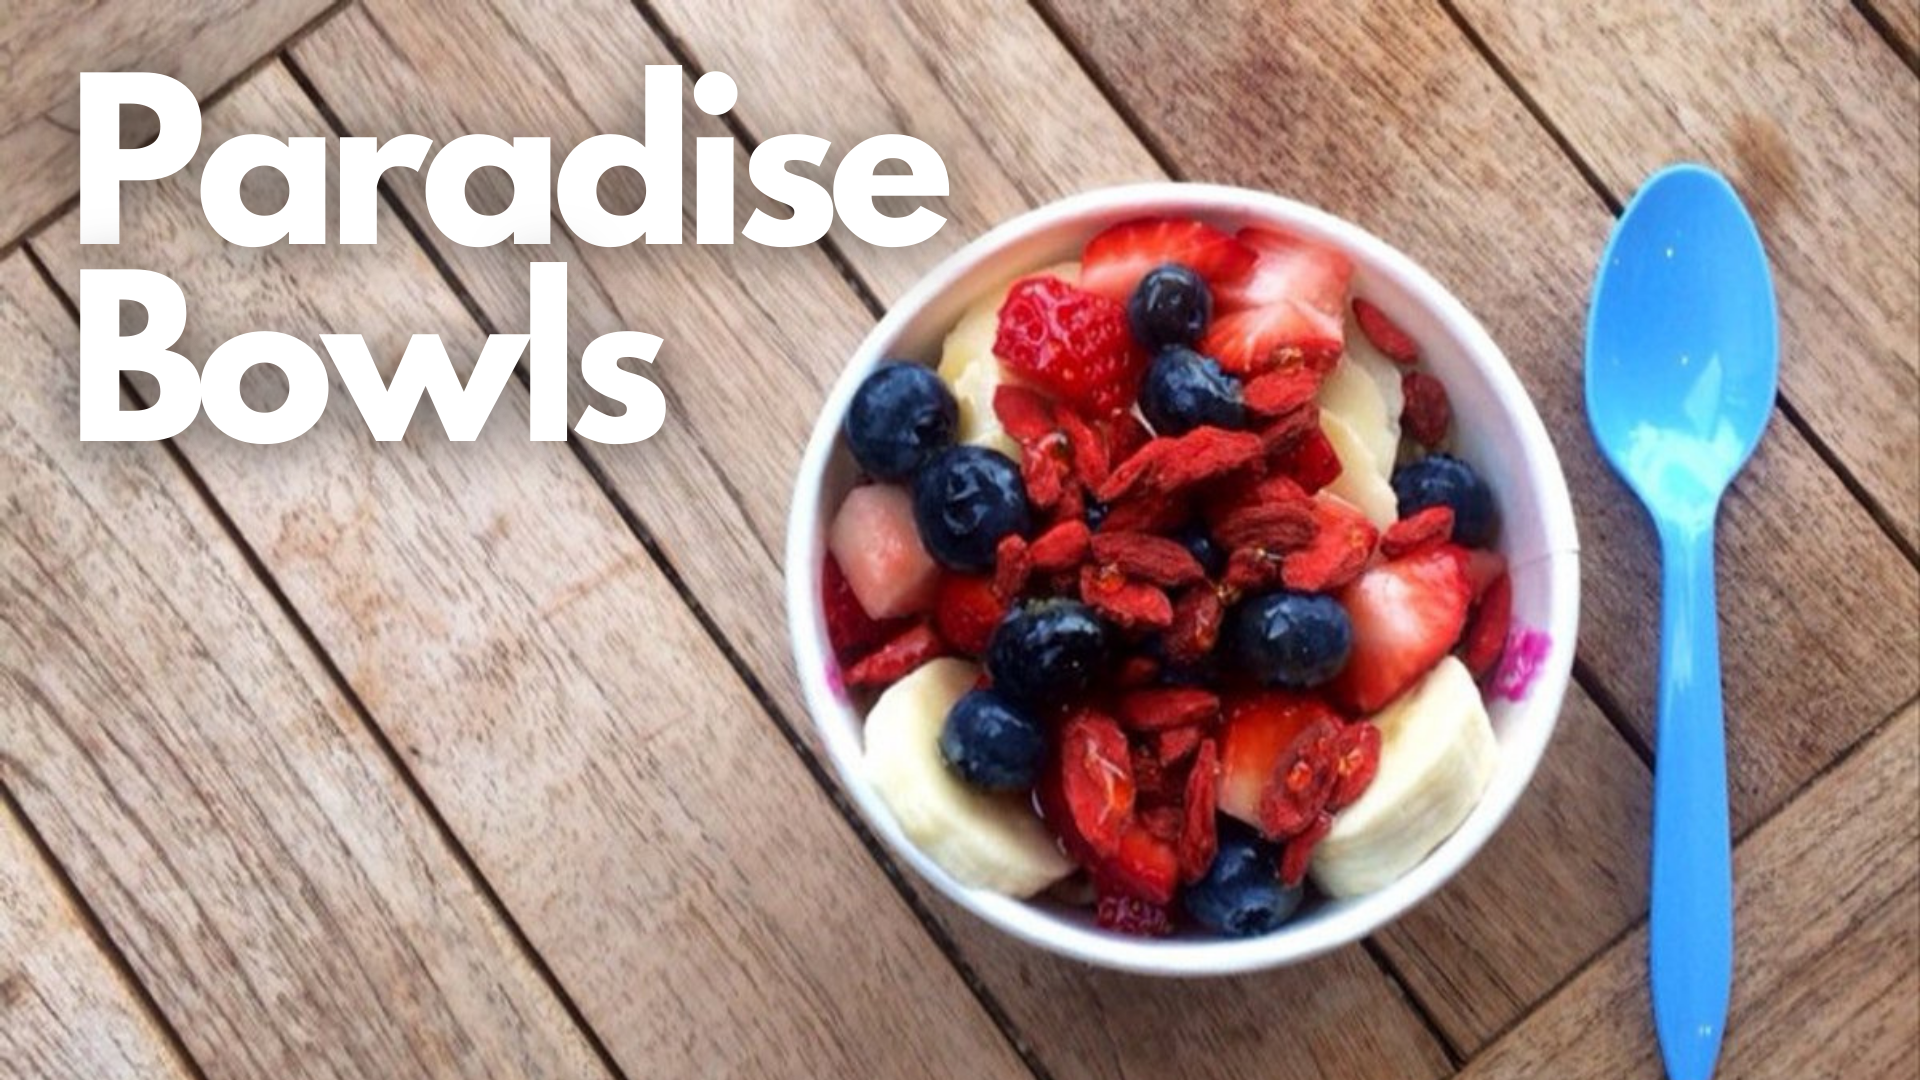 Paradise Bowls, Manhattan Beach, California, picture of an acai bowl with some strawberries blueberries and raspberries and bannana in a bowl with a blue sppon to the right of the bowl and some text to the left of the bowl